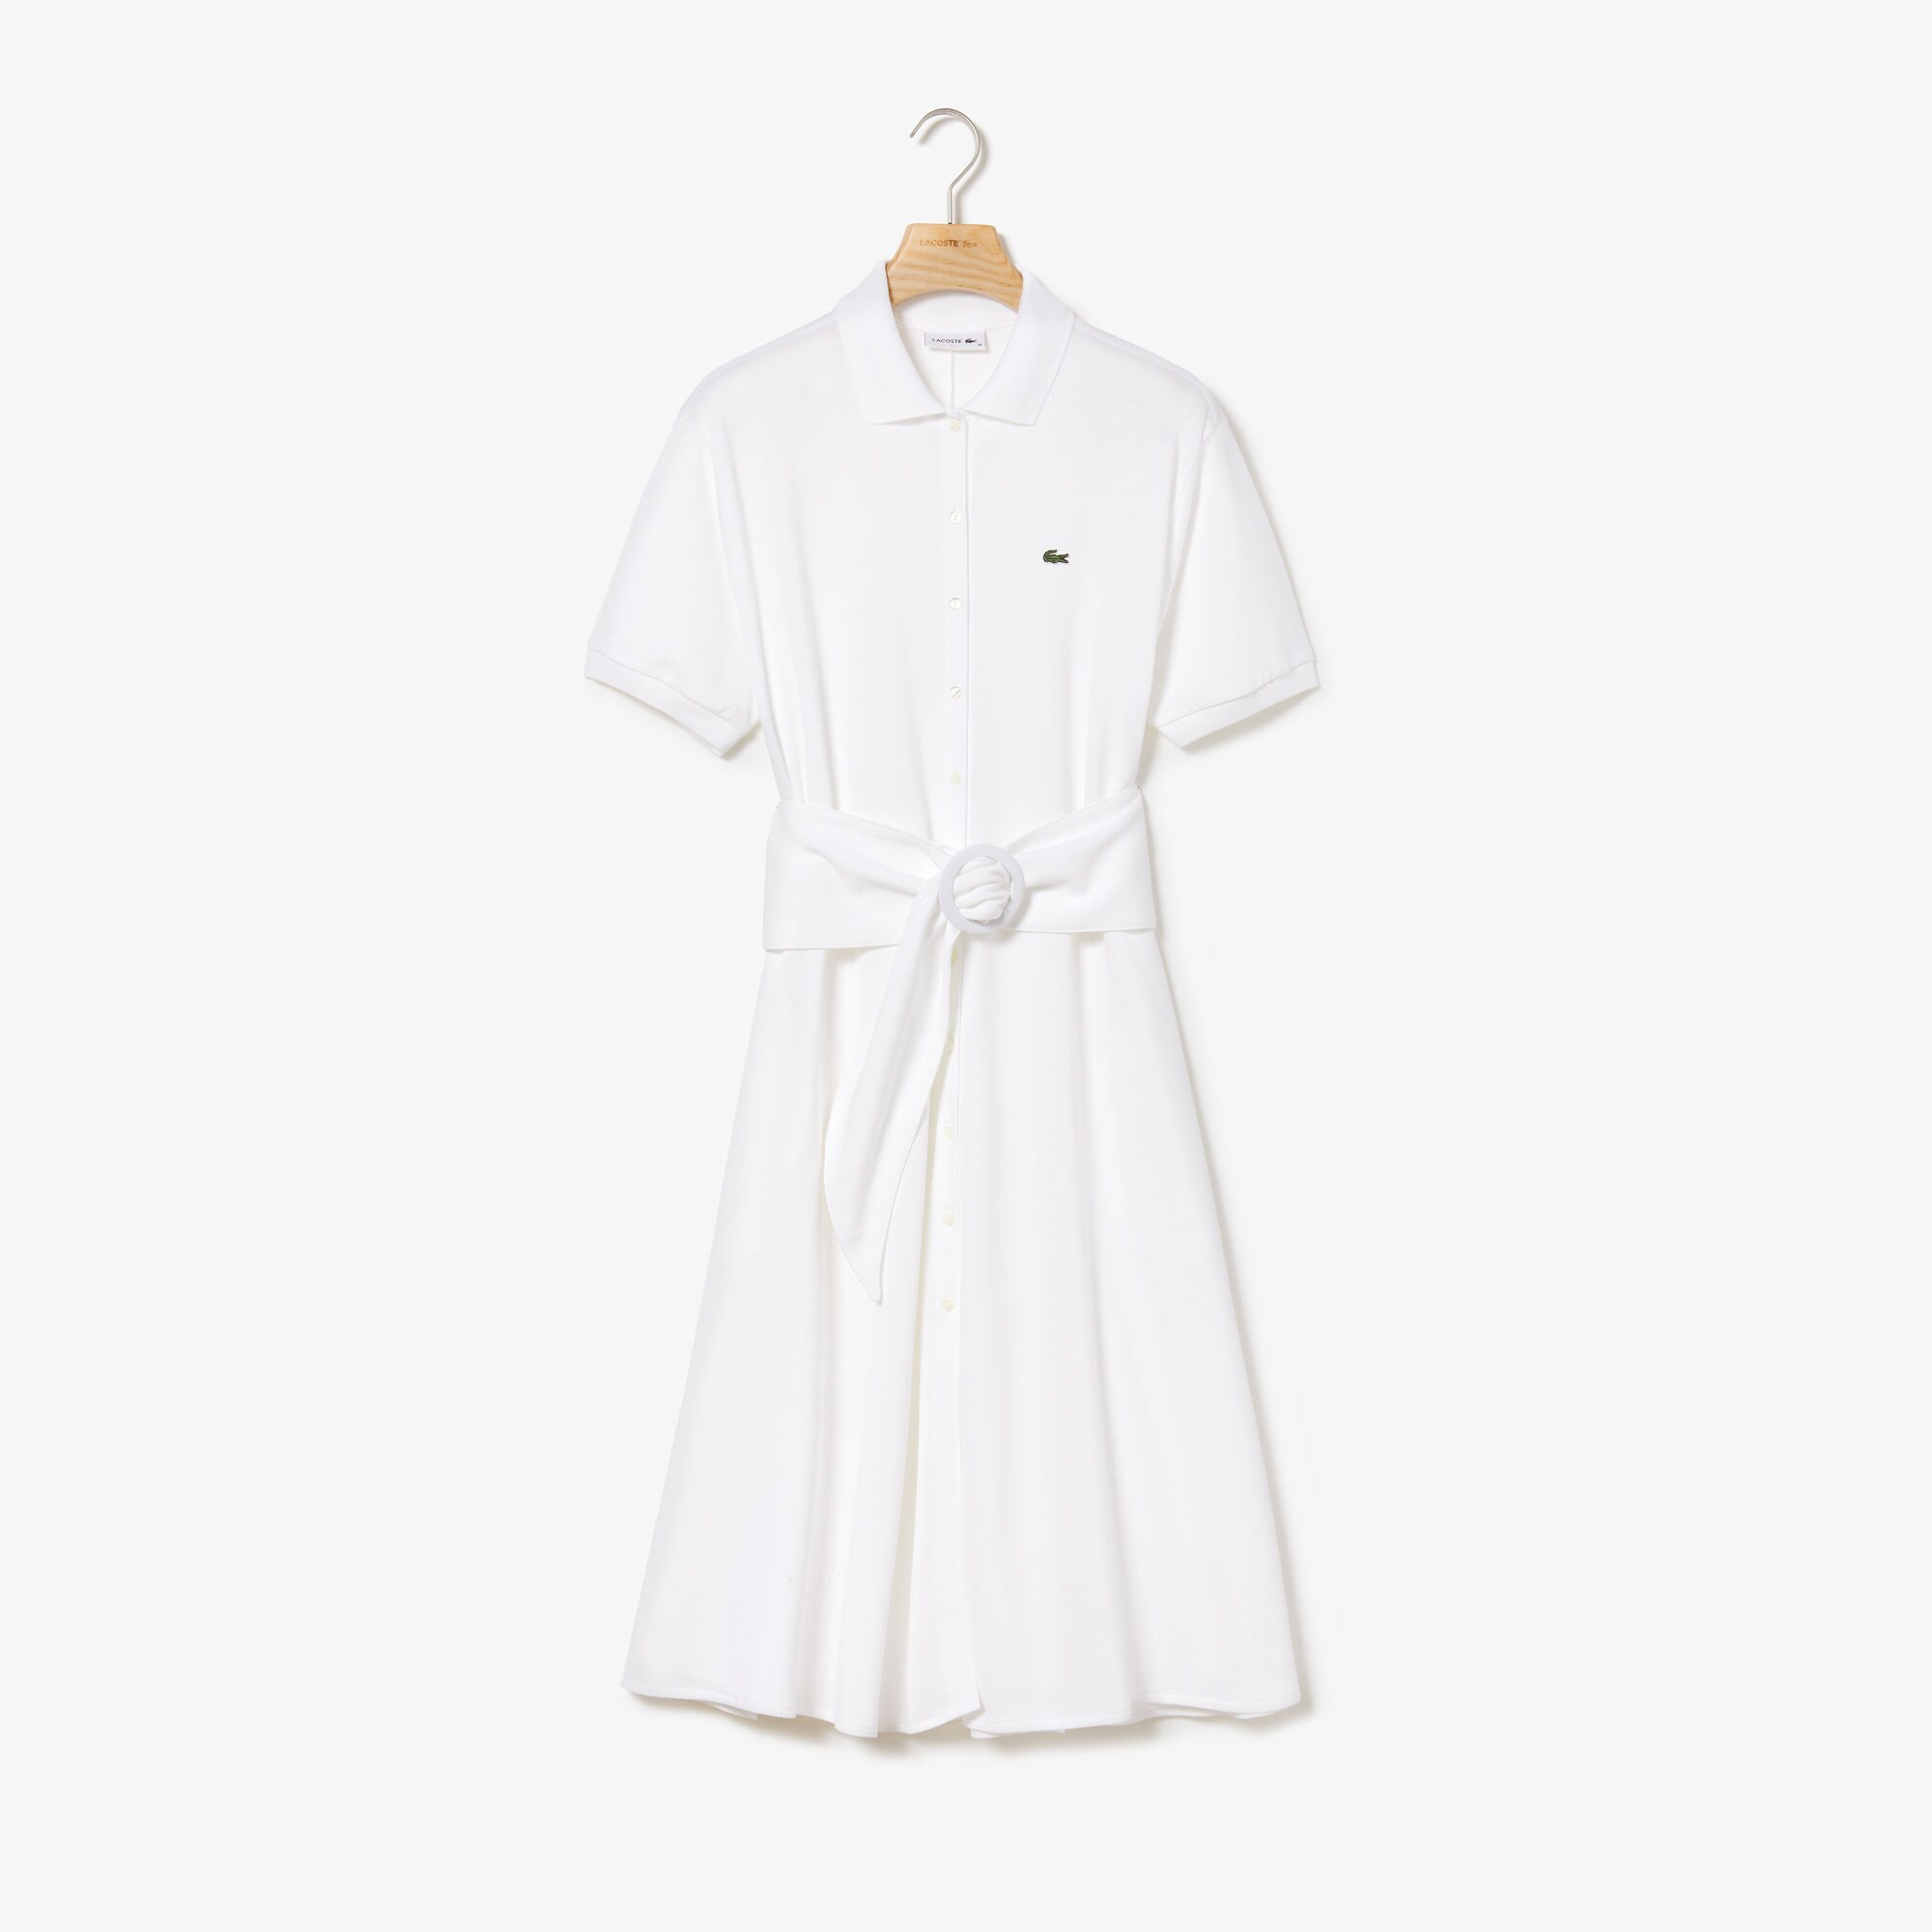 Women's Buttoned & Belted Soft Cotton Polo Shirt Dress